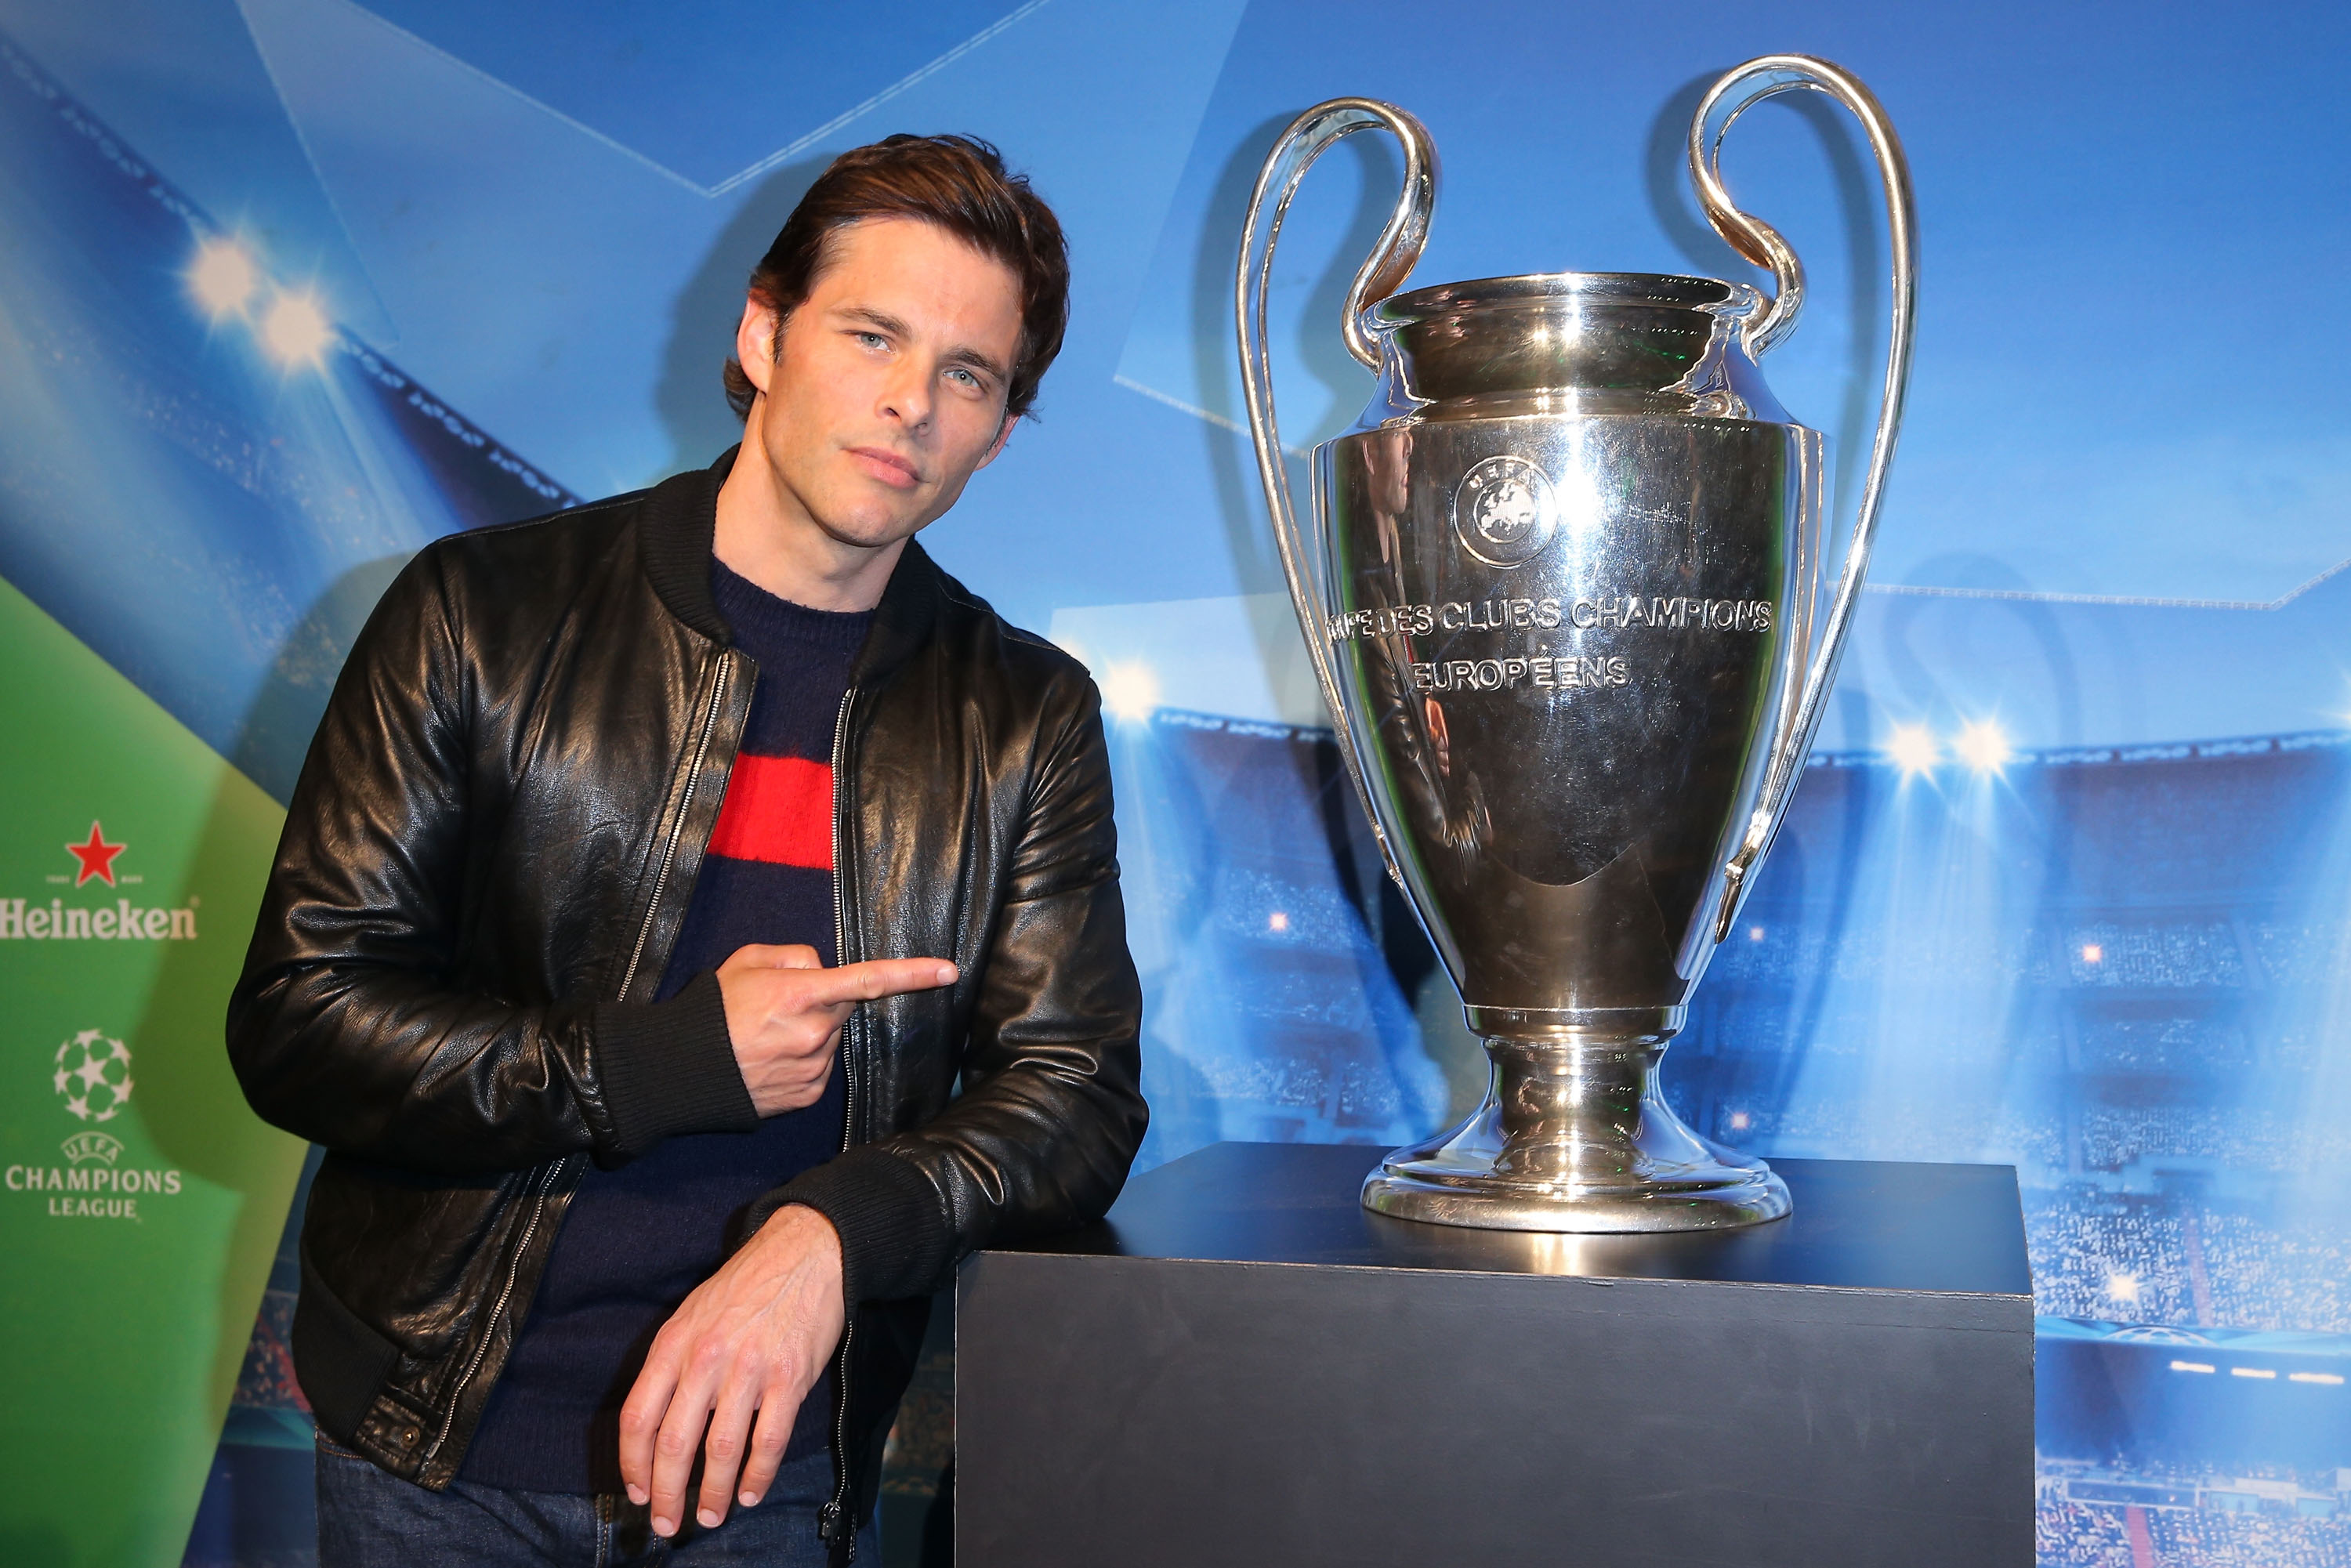 LOS ANGELES, CA - APRIL 20:  Actor James Marsden attends The UEFA Champions League Trophy Tour presented by Heineken on April 20, 2015 in Los Angeles, California.  (Photo by Imeh Akpanudosen/Getty Images for Heineken)